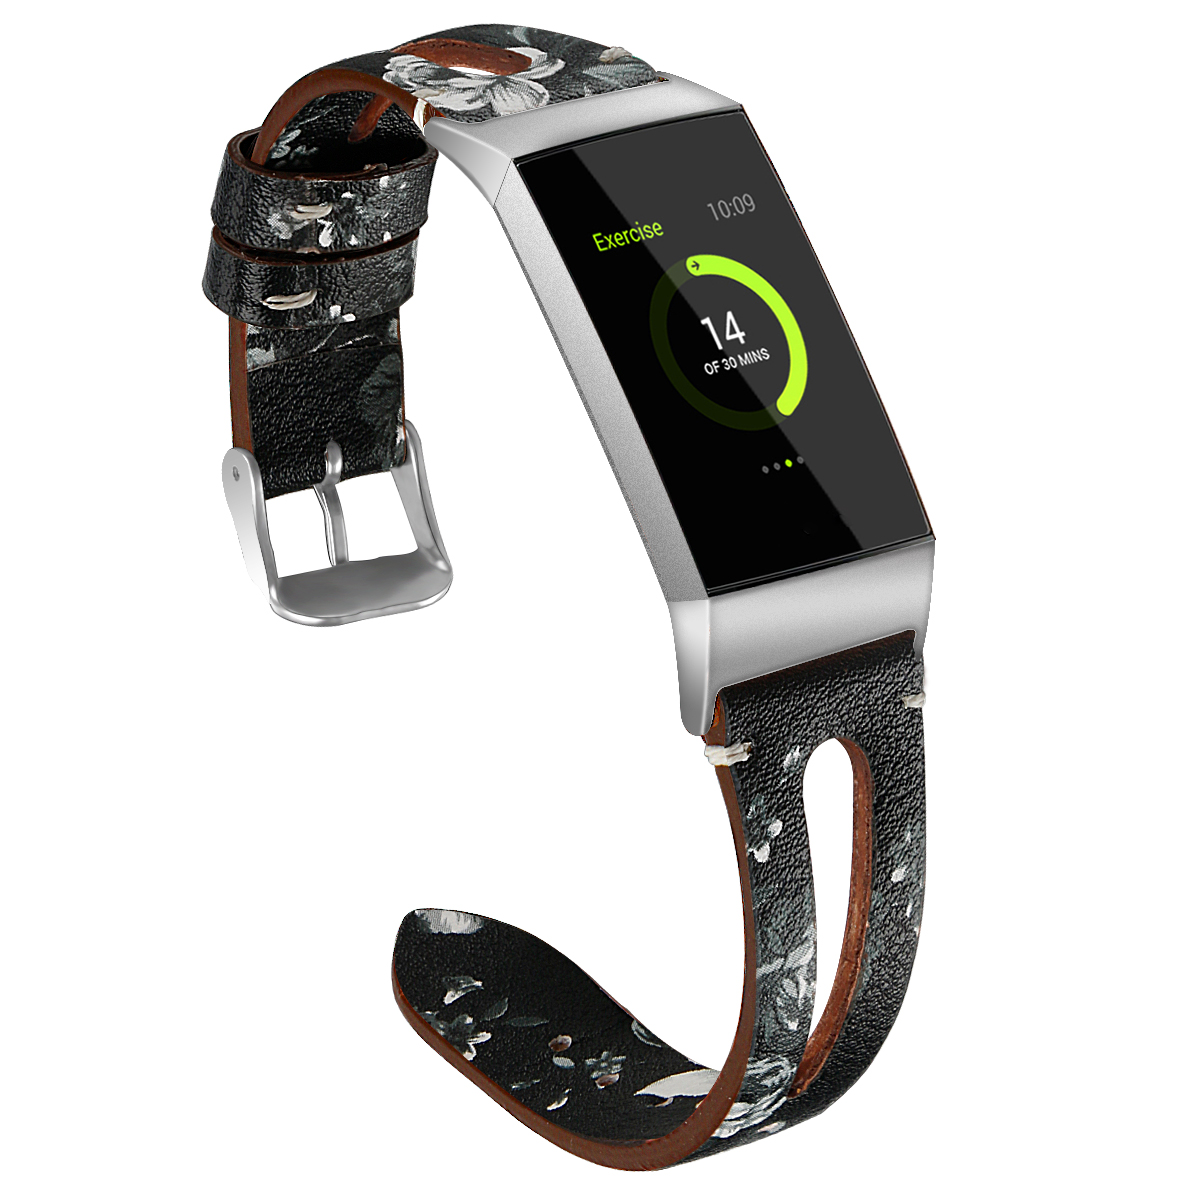 Bakeey Replacement Watch Strap Flower Pattern Watch Band for Fitbit Charge 3 Smart Watch